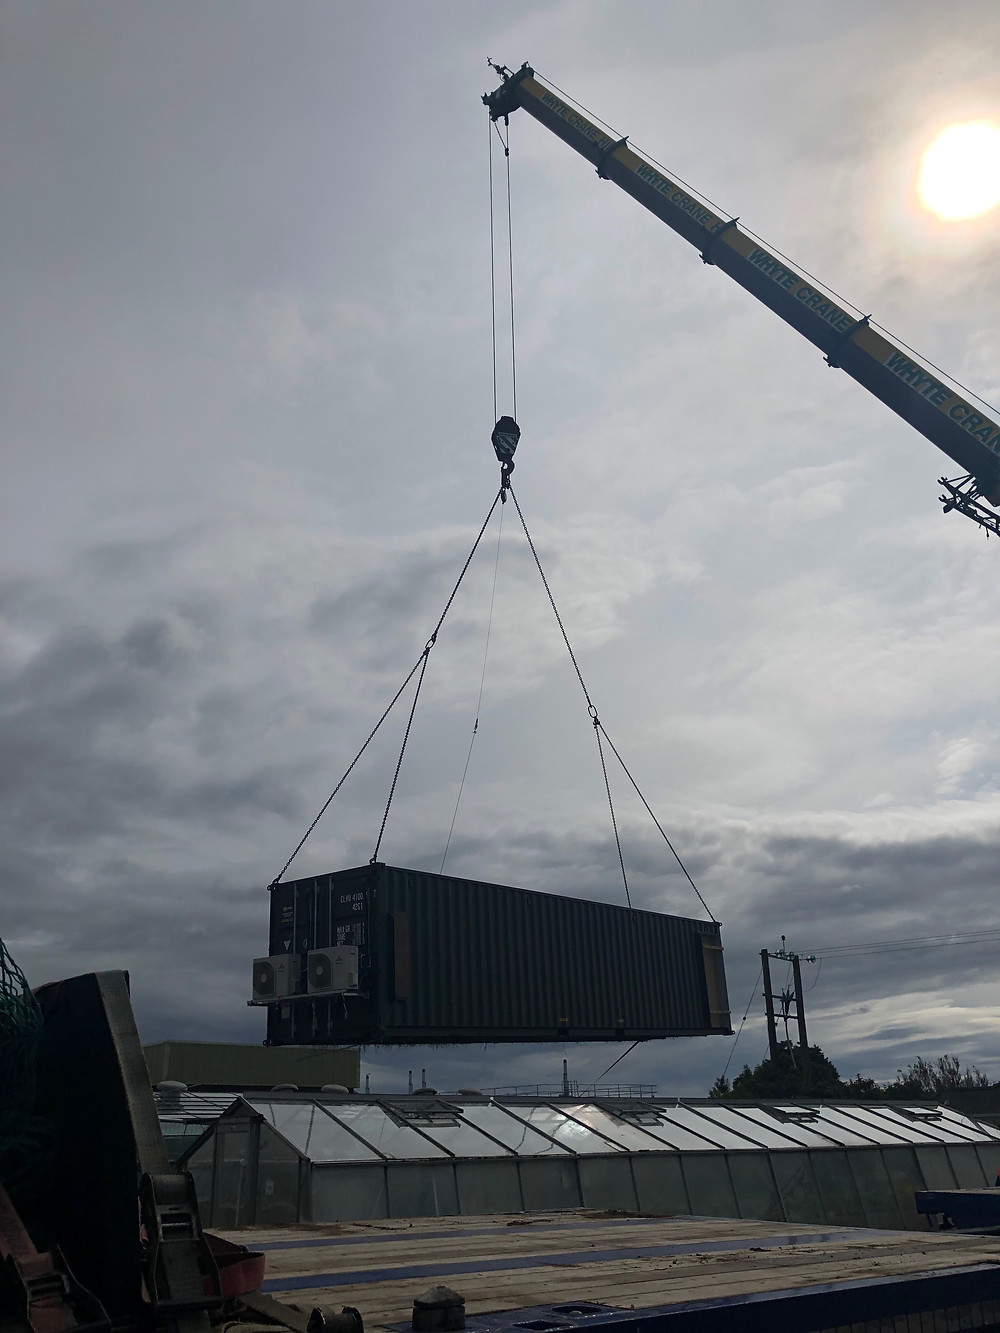 Shipping container being lifted into place by a crane